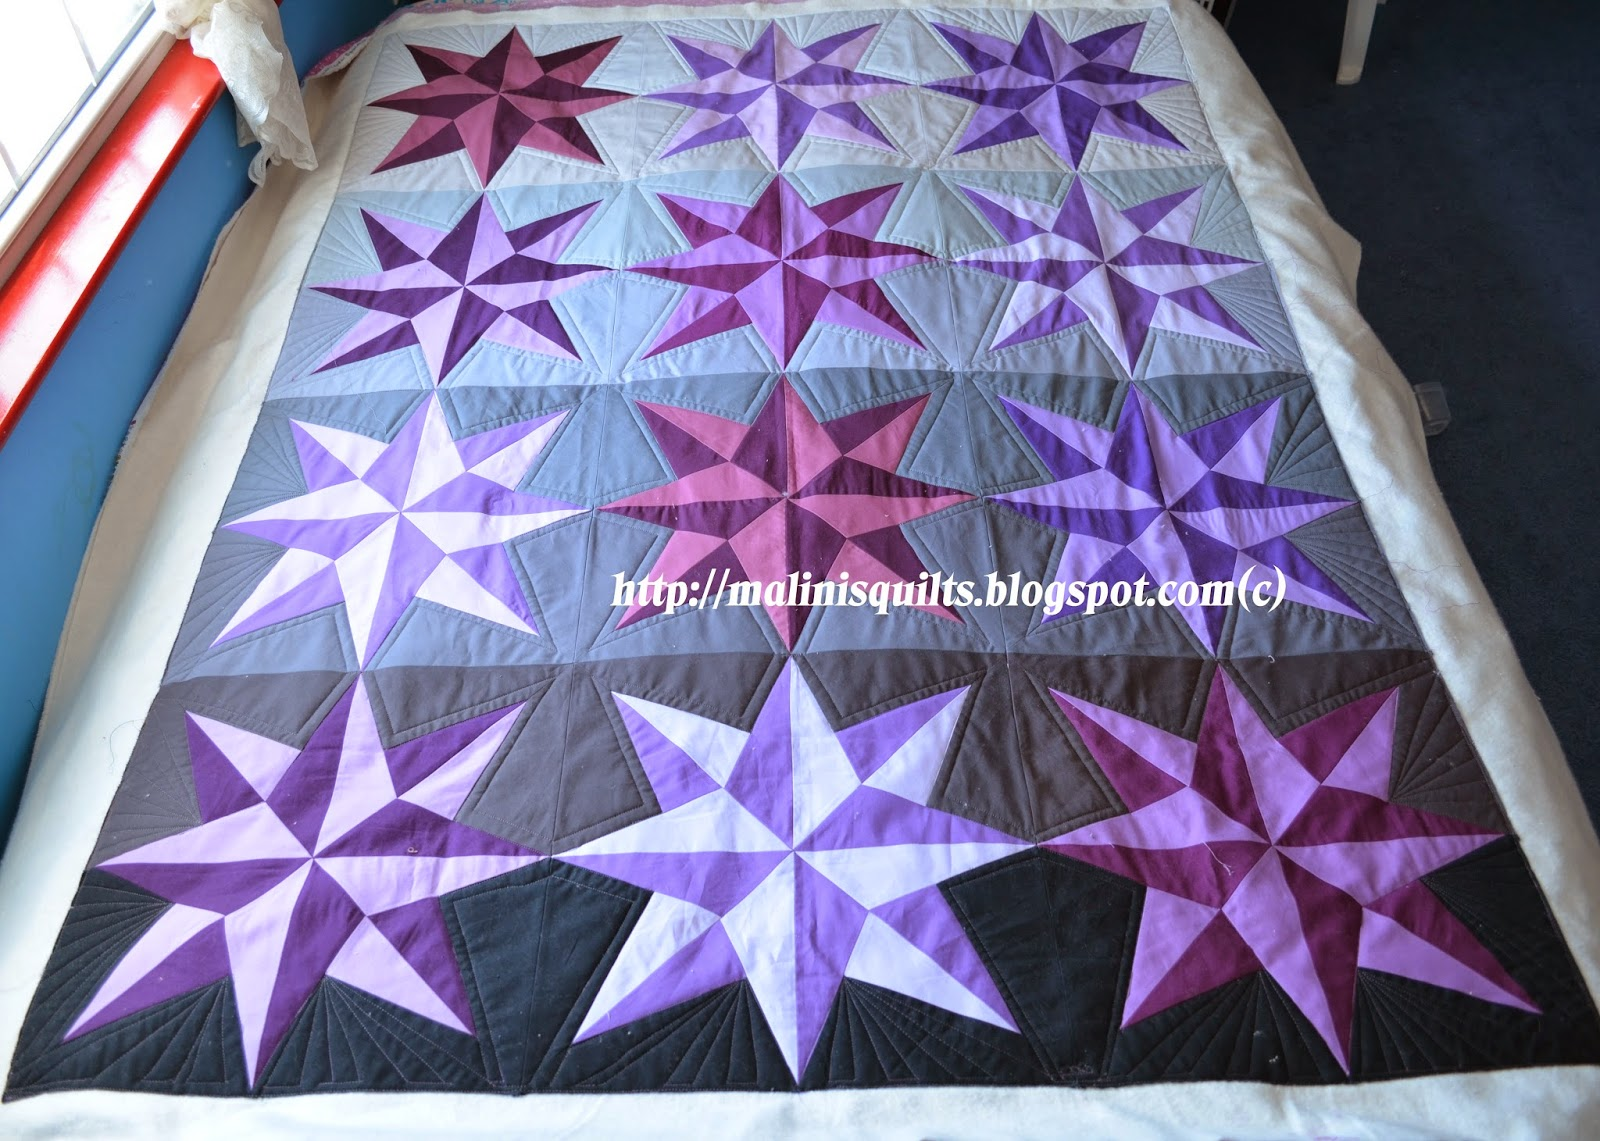 My Sewing and Quilting Adventures: 2014 Pantone Quilt Challenge ... : starburst quilt - Adamdwight.com